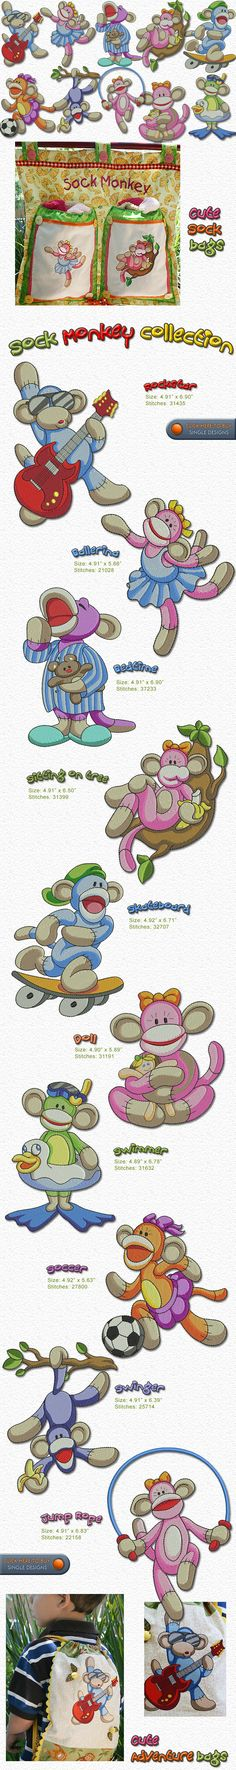 Sock Monkey Embroidery Designs Free Embroidery Design Patterns